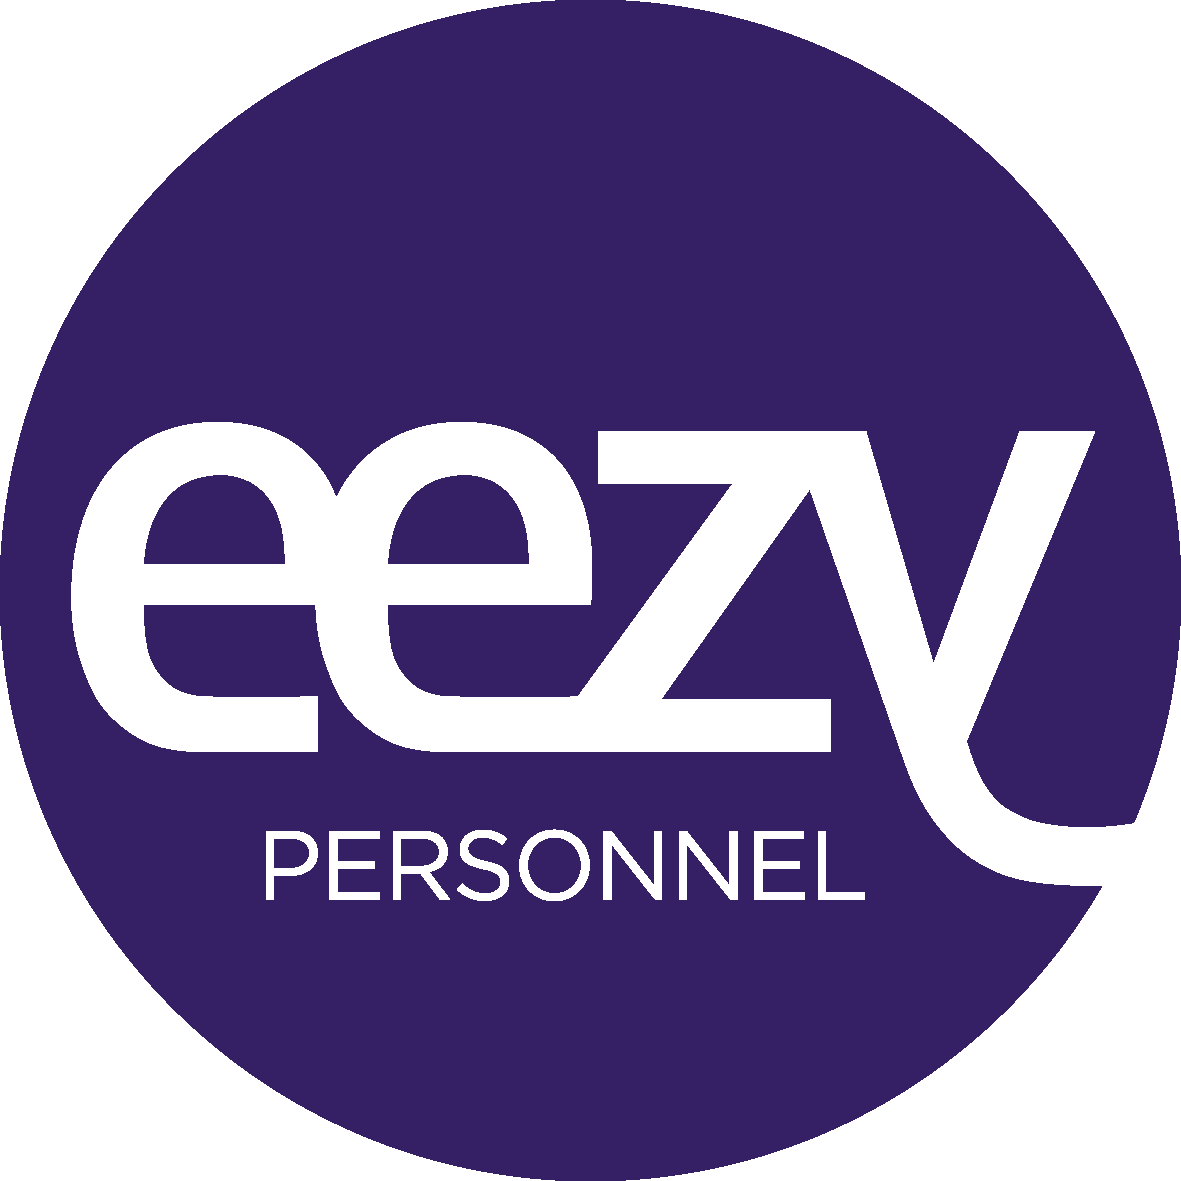 Eezy Personnel Oy